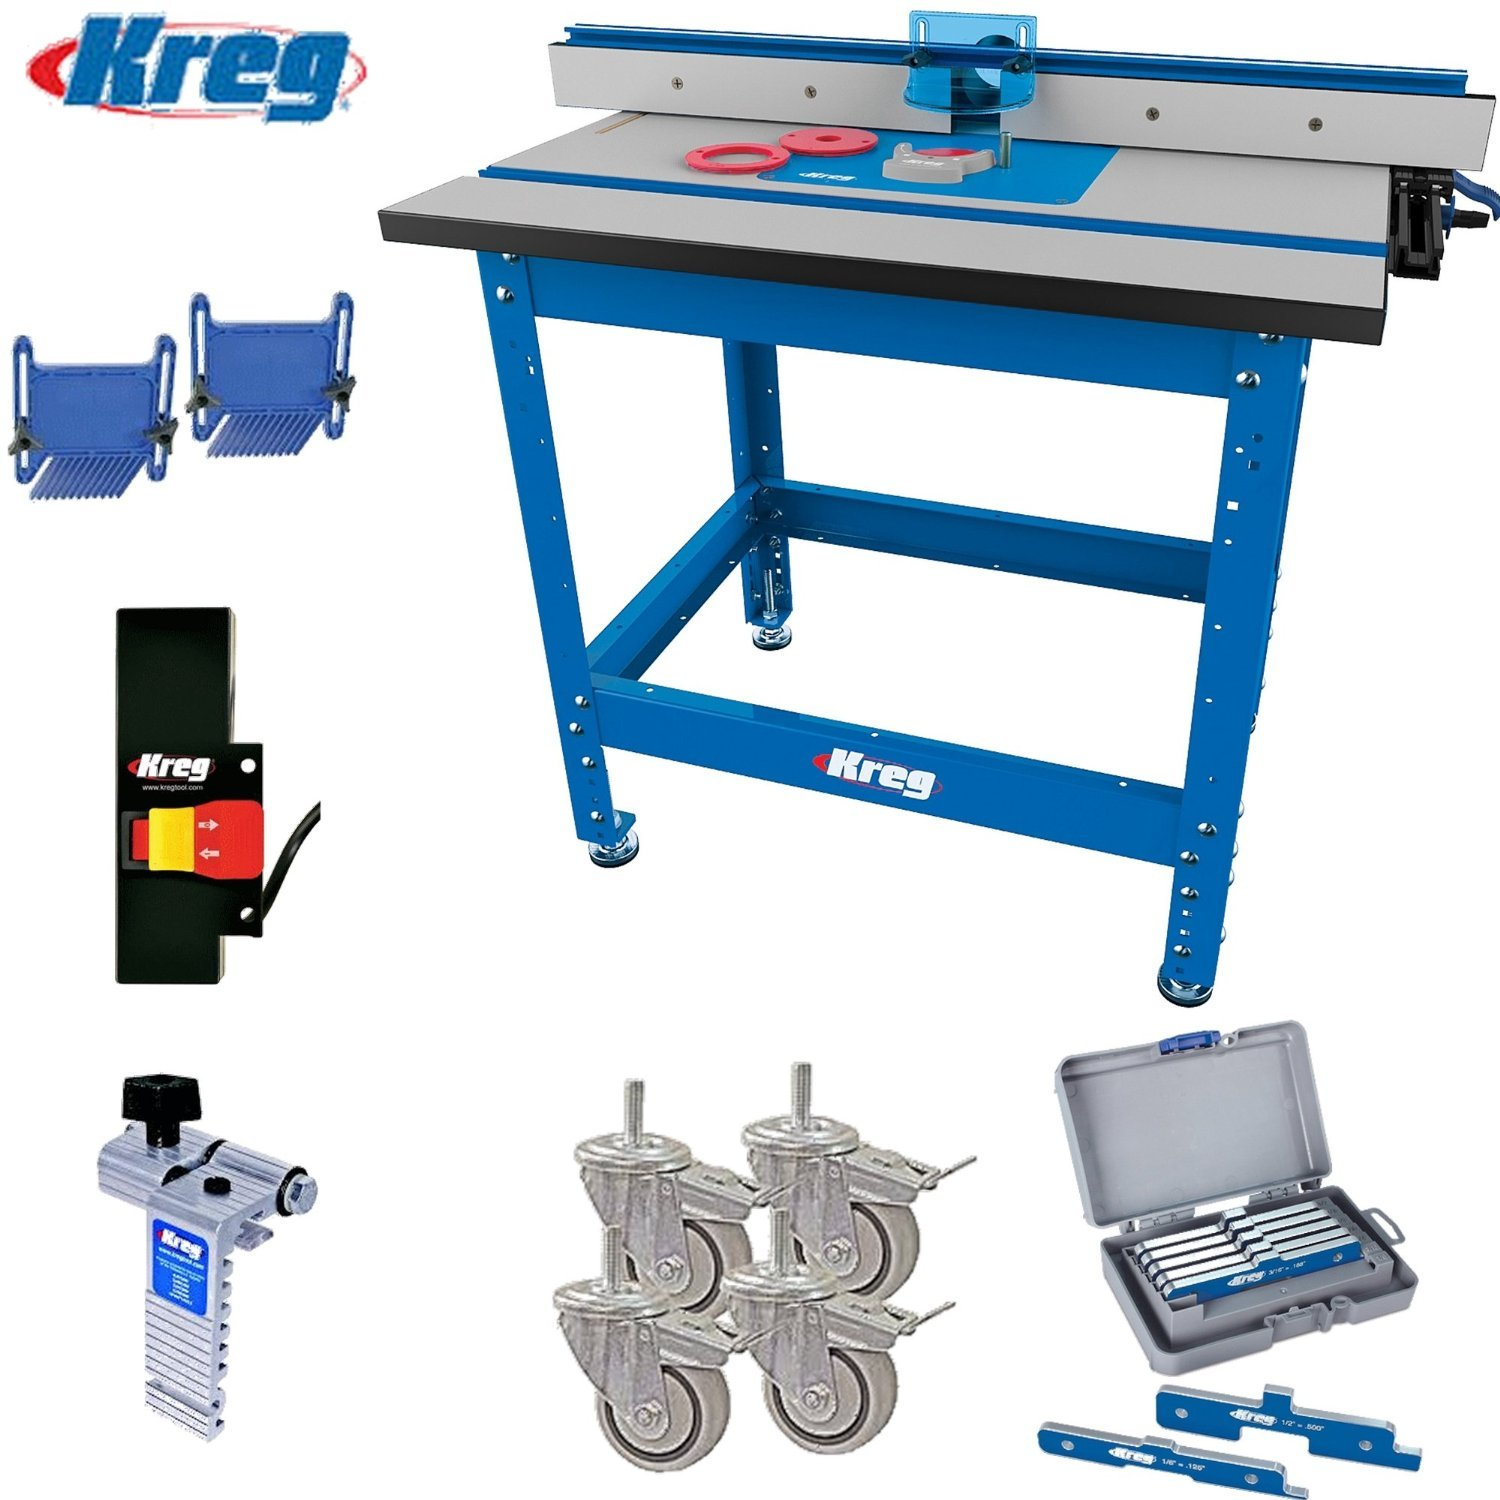 Kreg prs1045 krs1035 prs1025 prs1015 router table set amazon greentooth Images